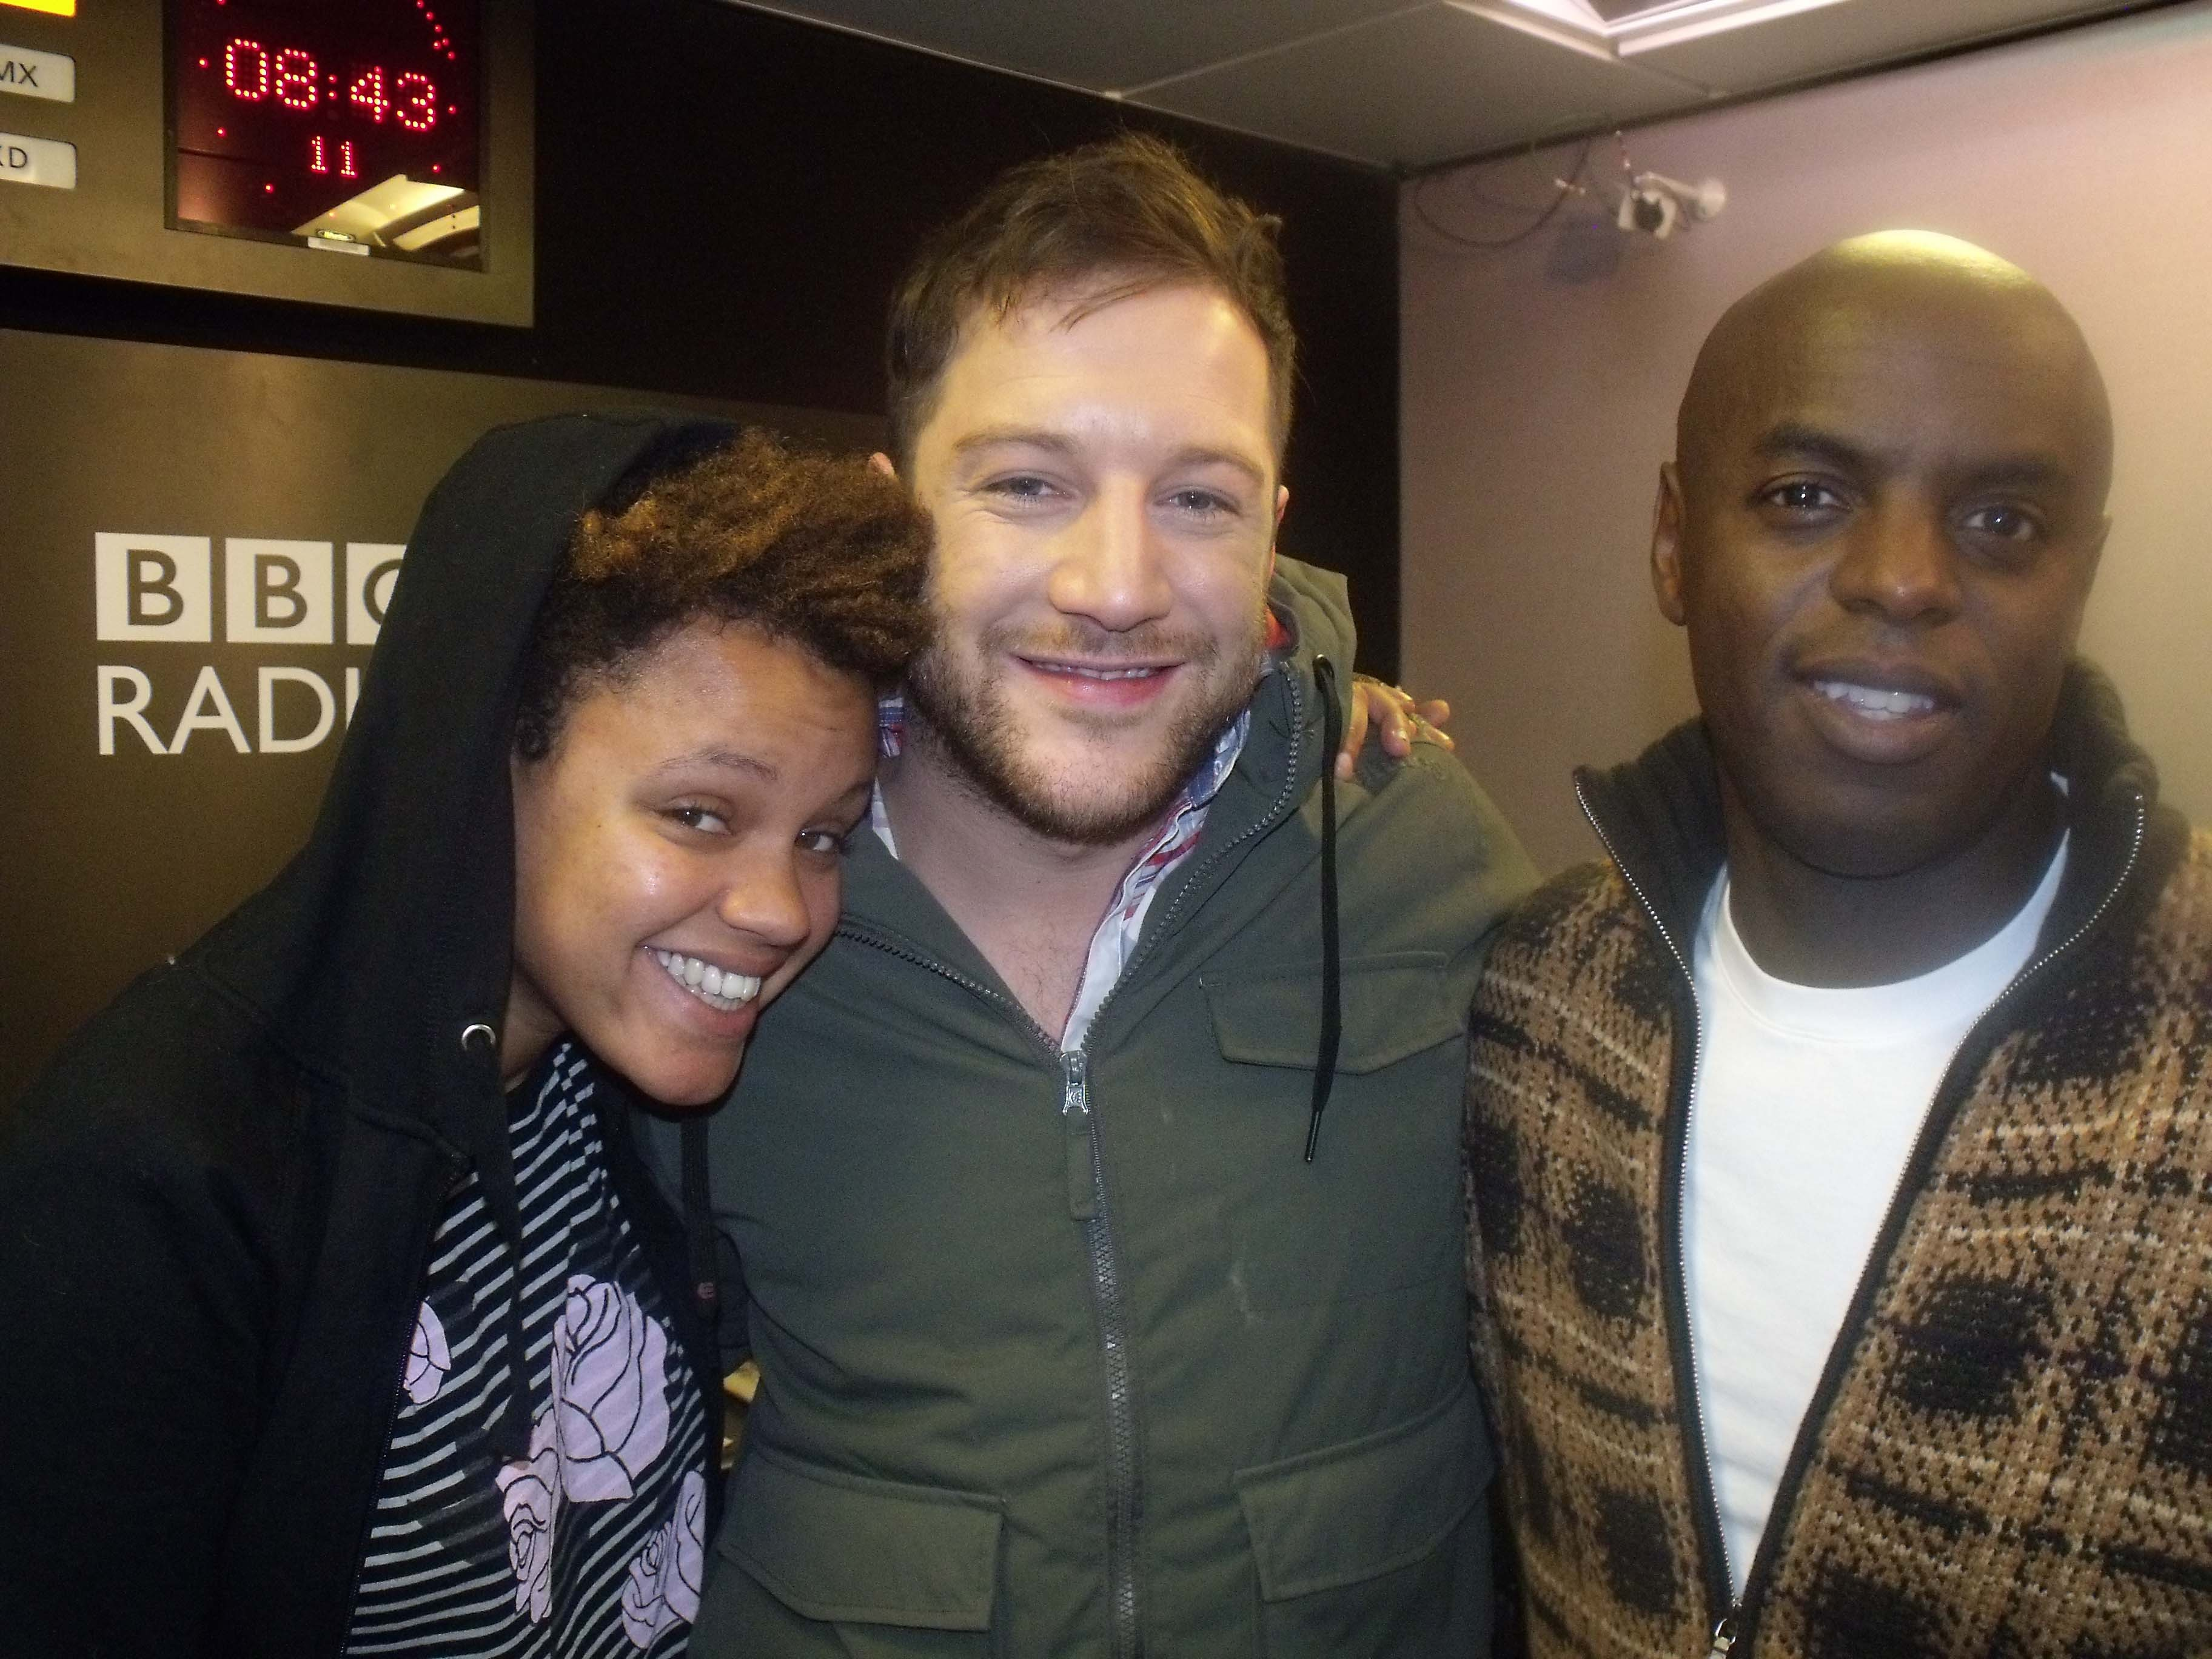 1Xtra Breakfast - 2010 Guests Pt. 2